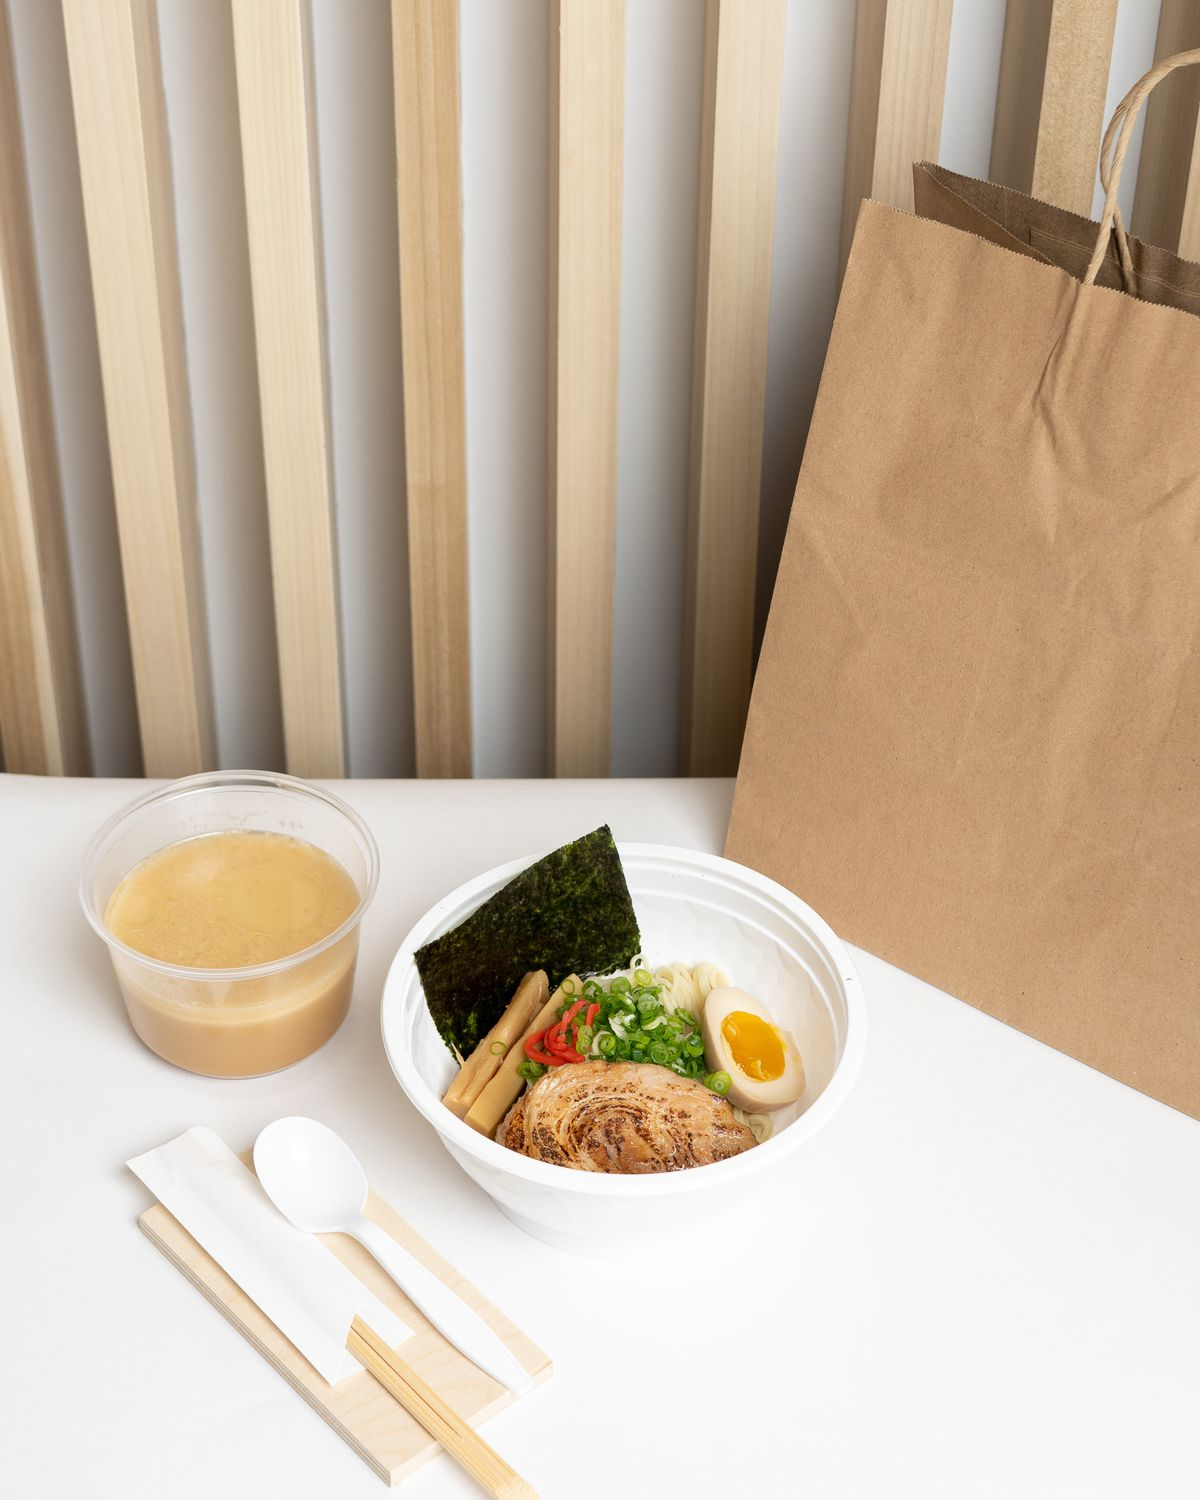 Menya Hosaki packages broth and noodles separately for to-go orders